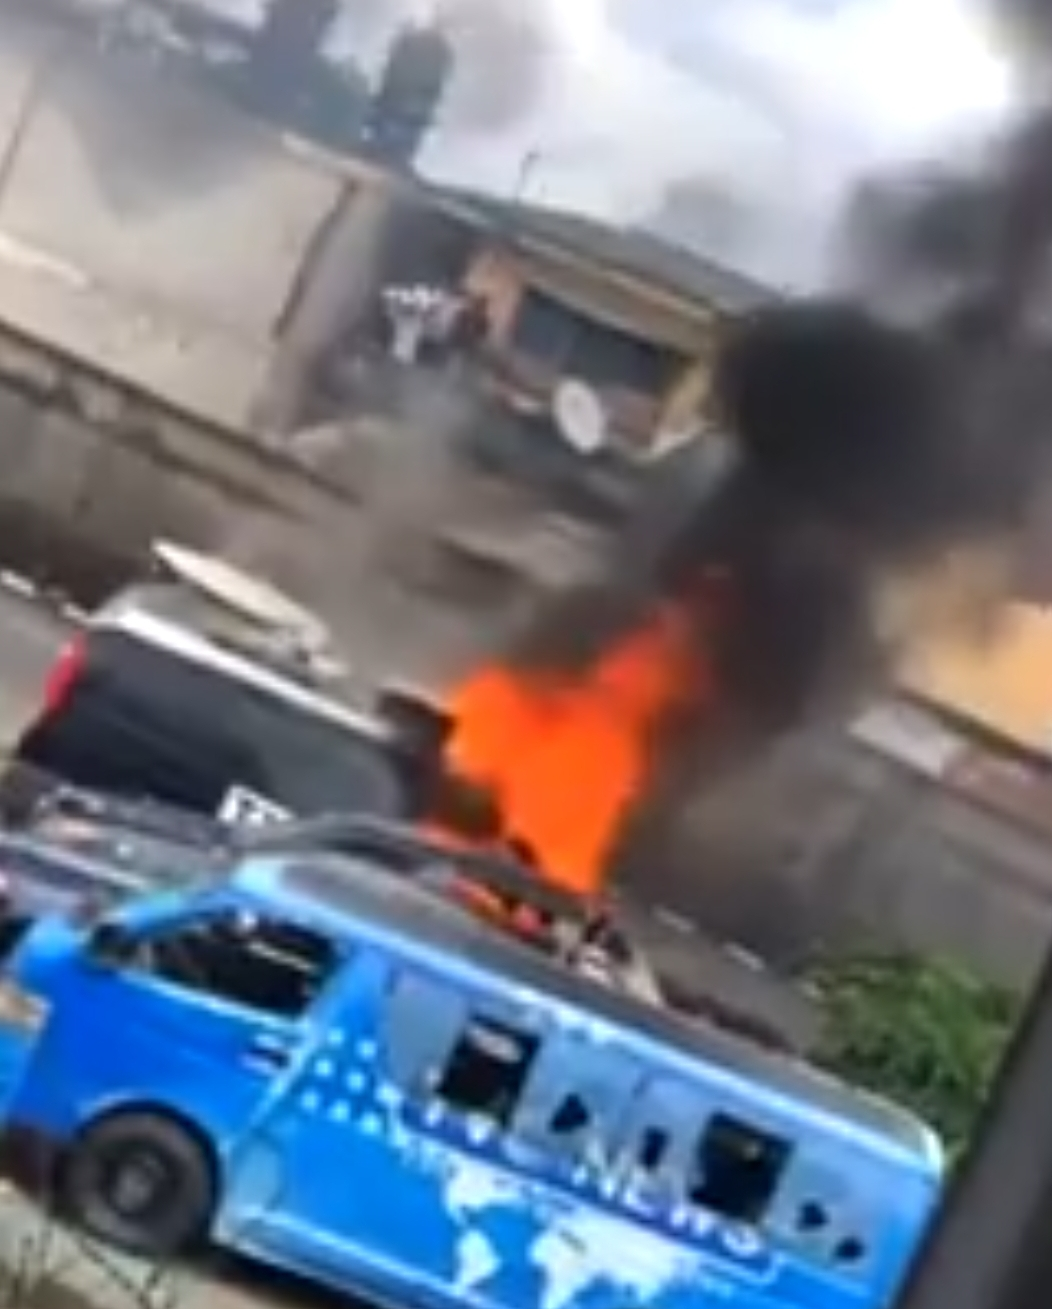 TVC set on fire | End SARS | We need to stop this violence and focus on politics: Liberating Nigeria